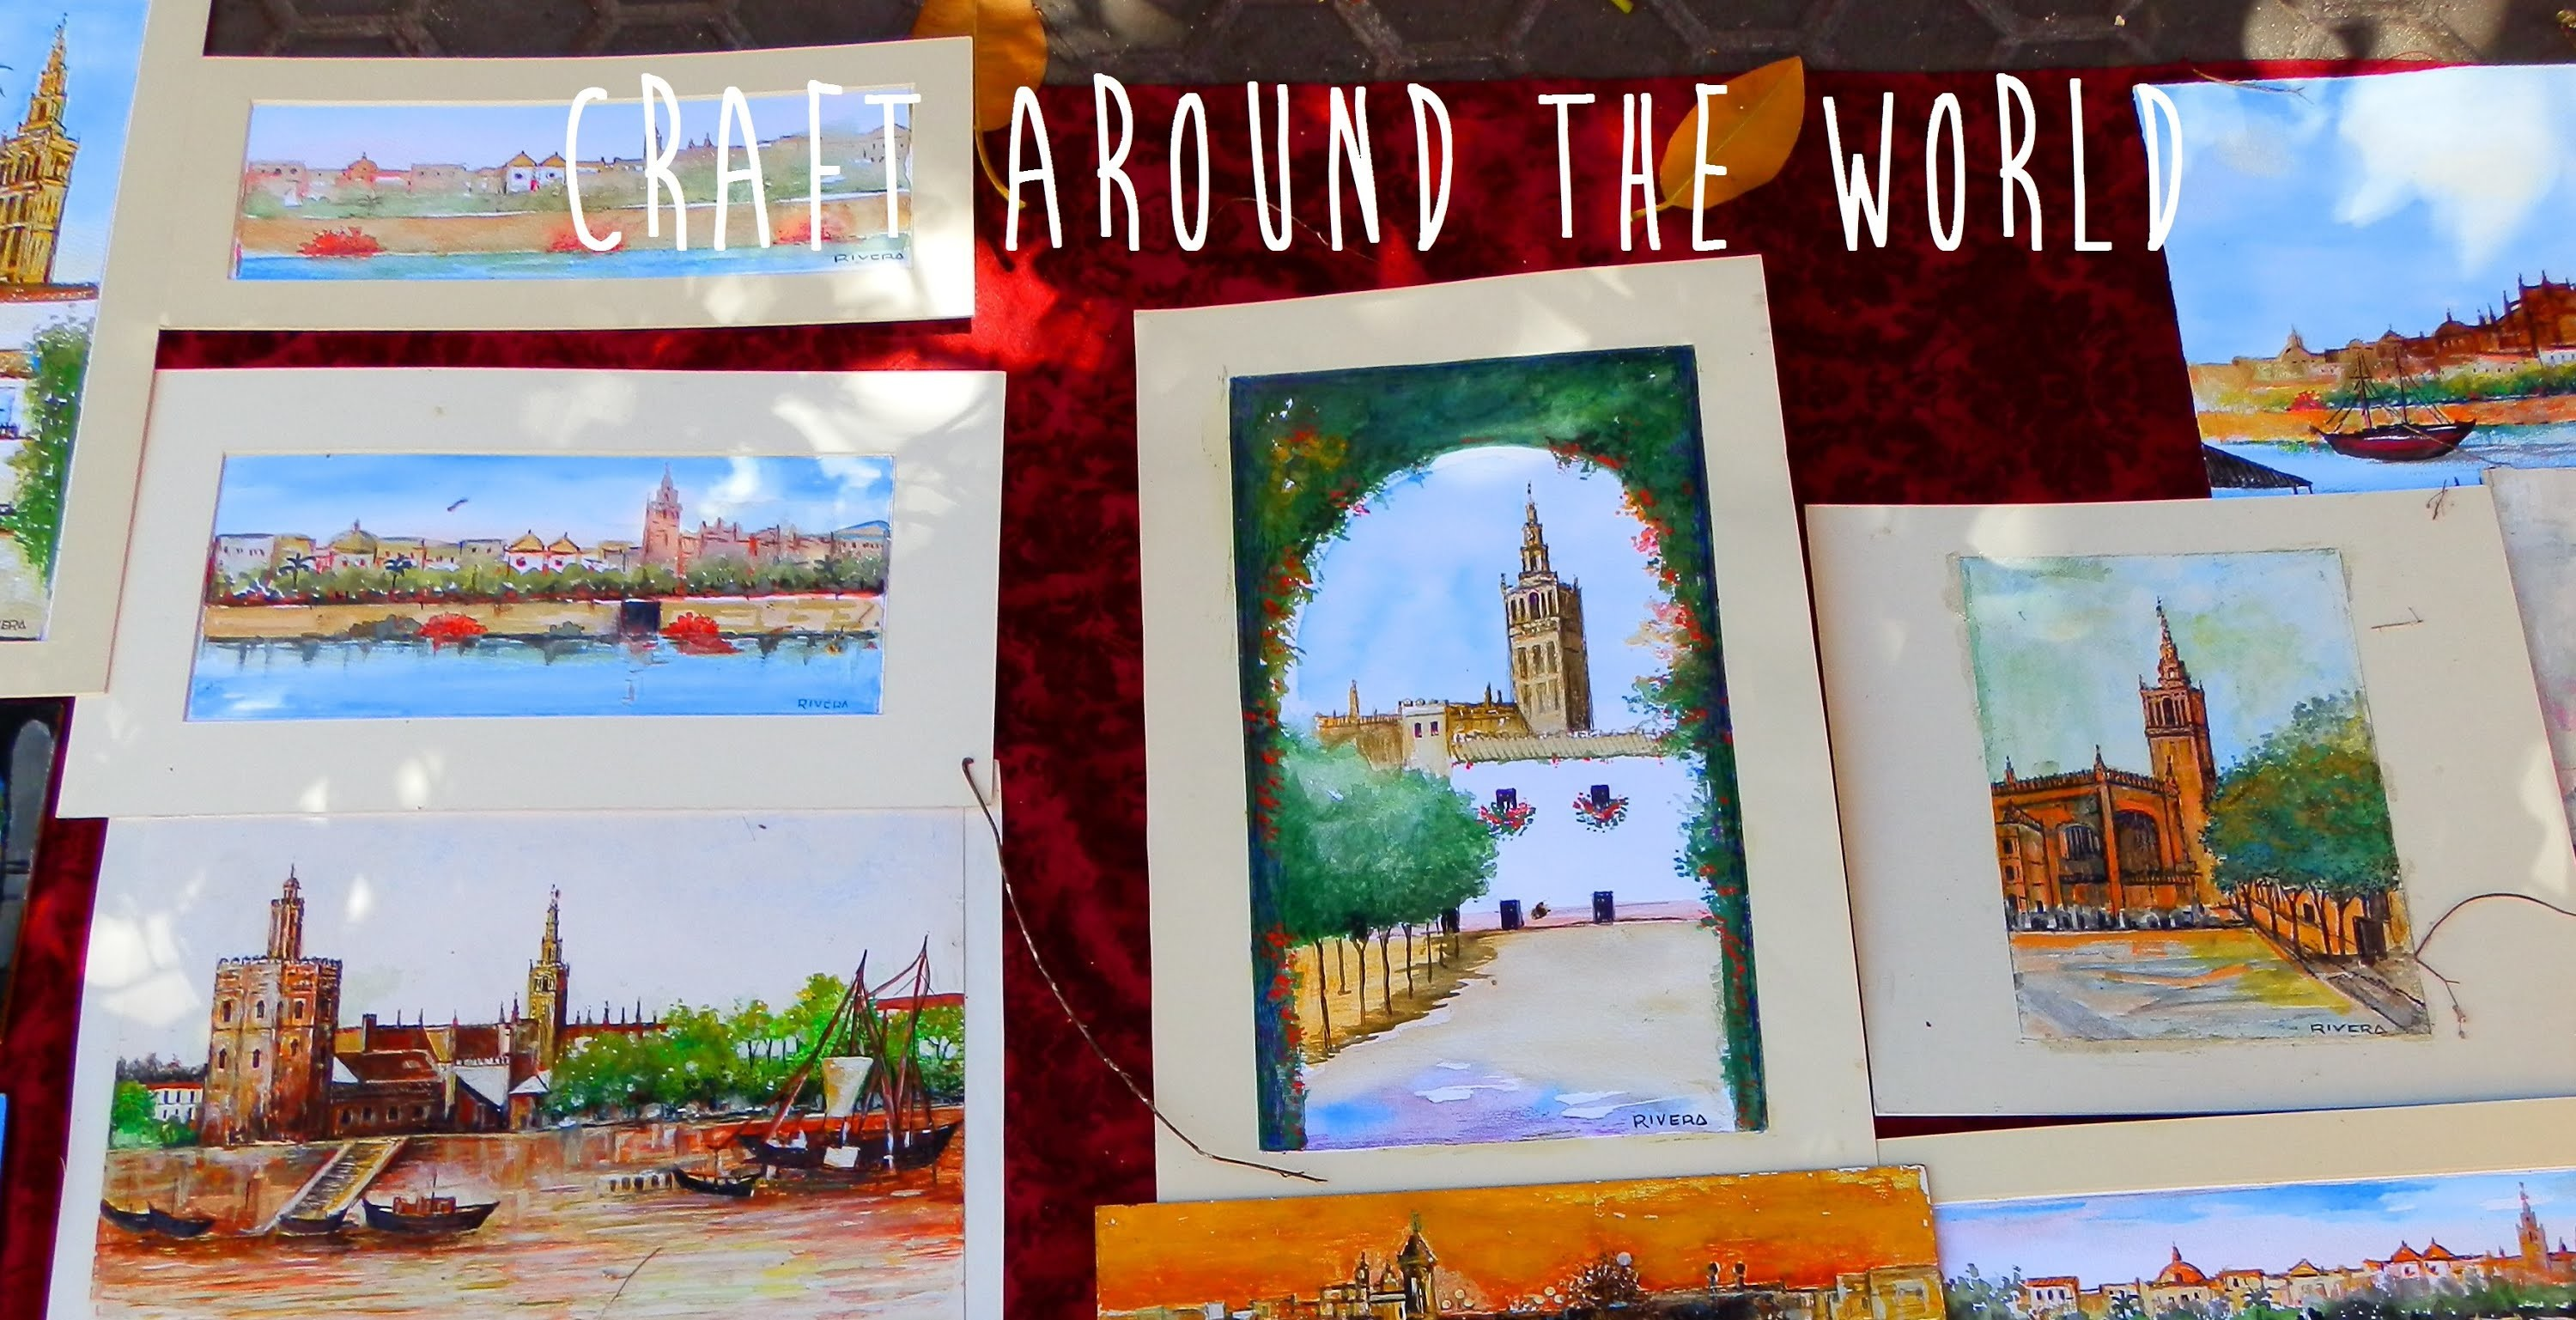 PASEO DE LA O Y PLAZA DEL MUSEO (Sevilla, España) - CRAFT AROUND THE WORLD